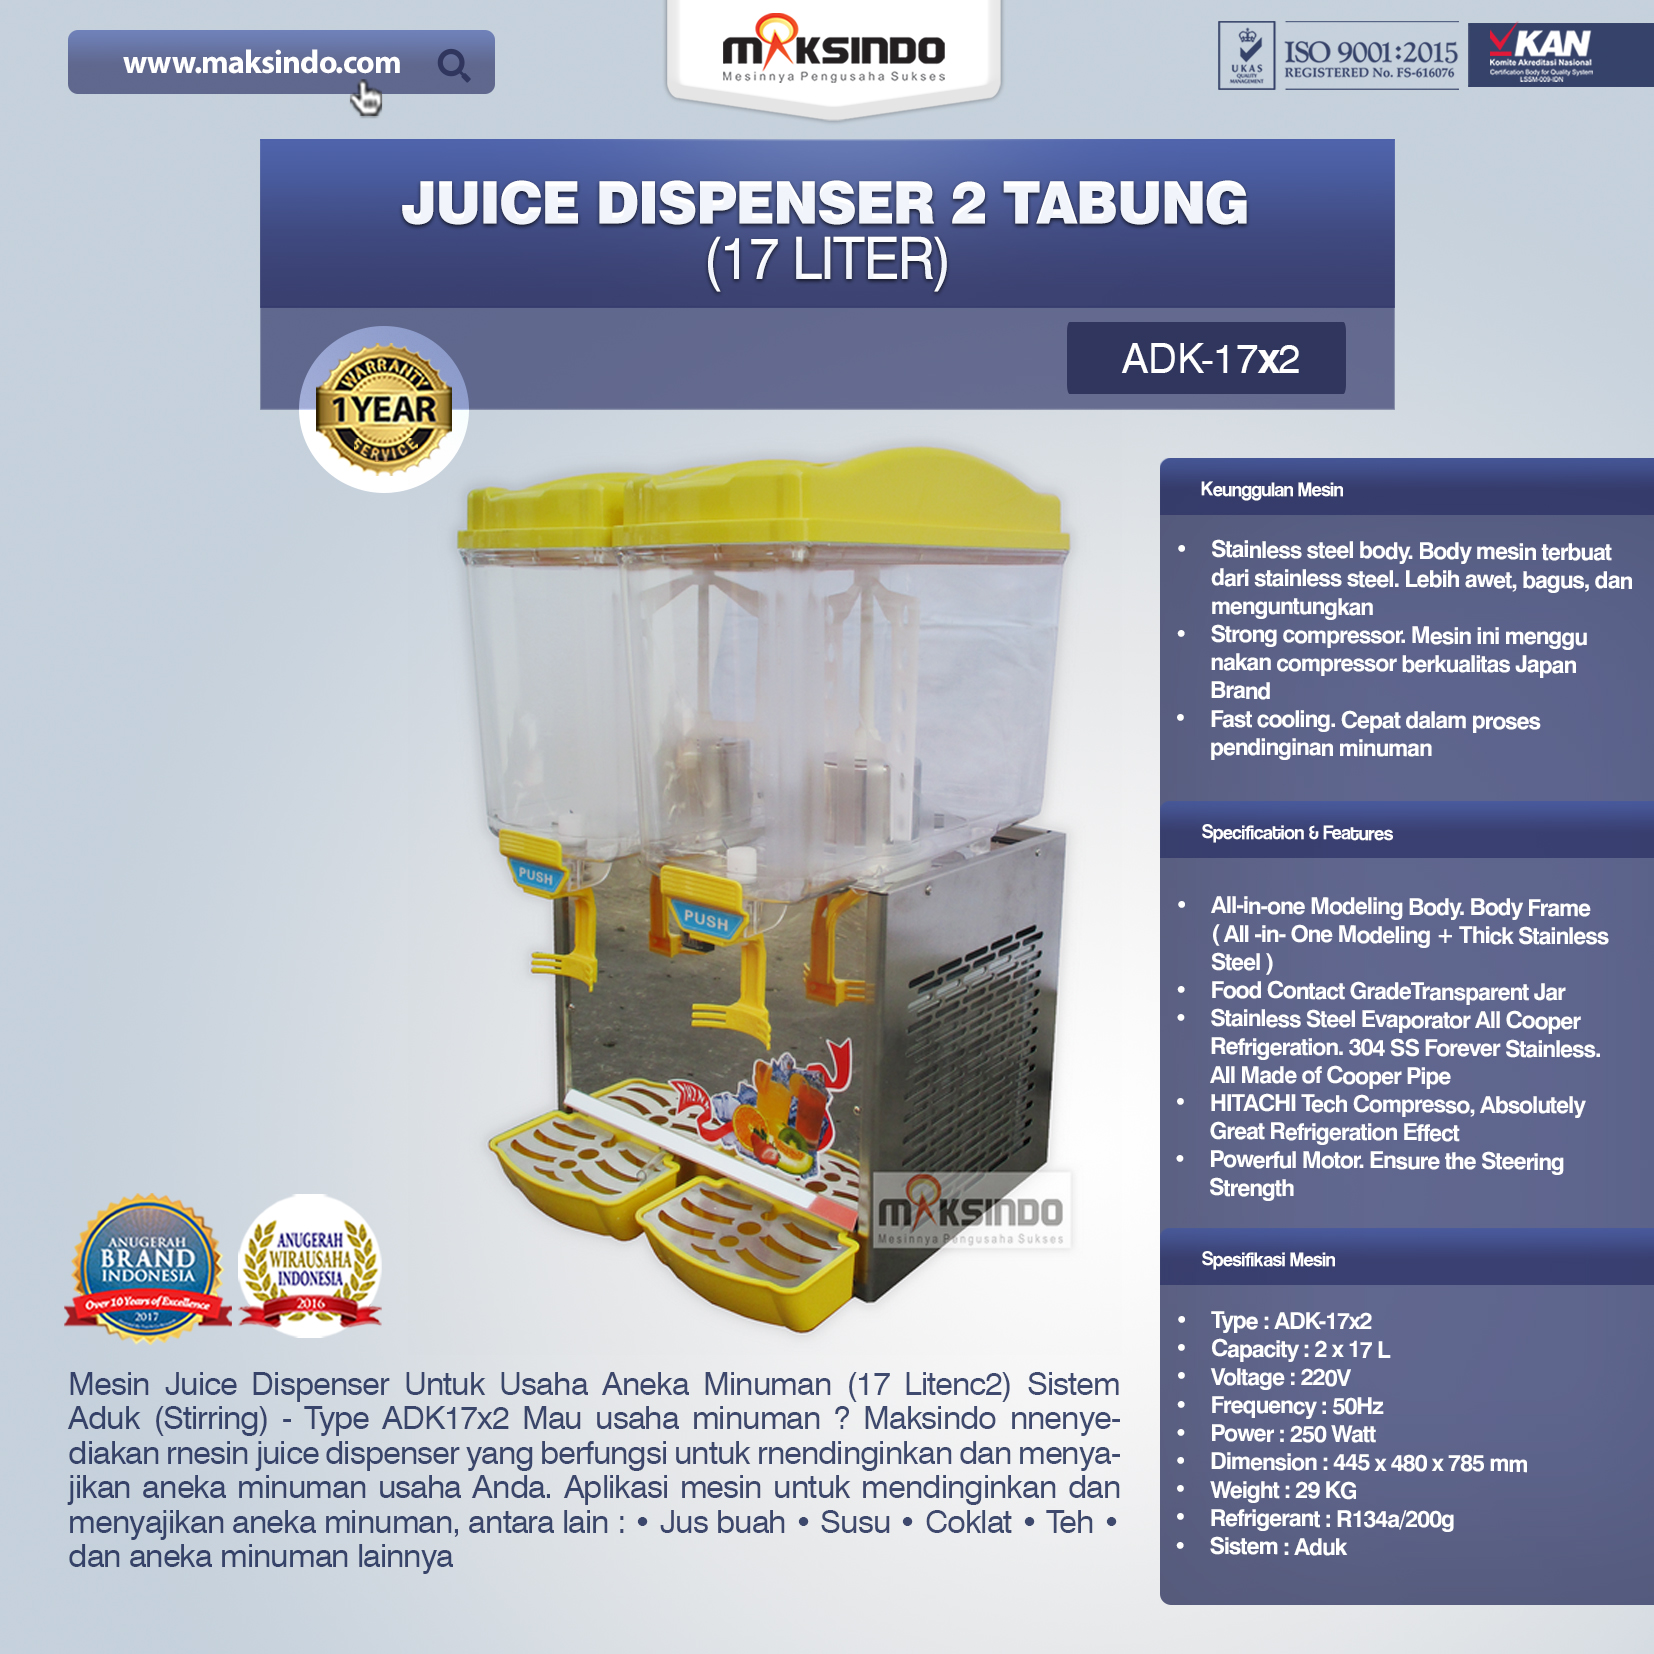 Juice Dispenser 2 Tabung 17 Liter - ADK17x2